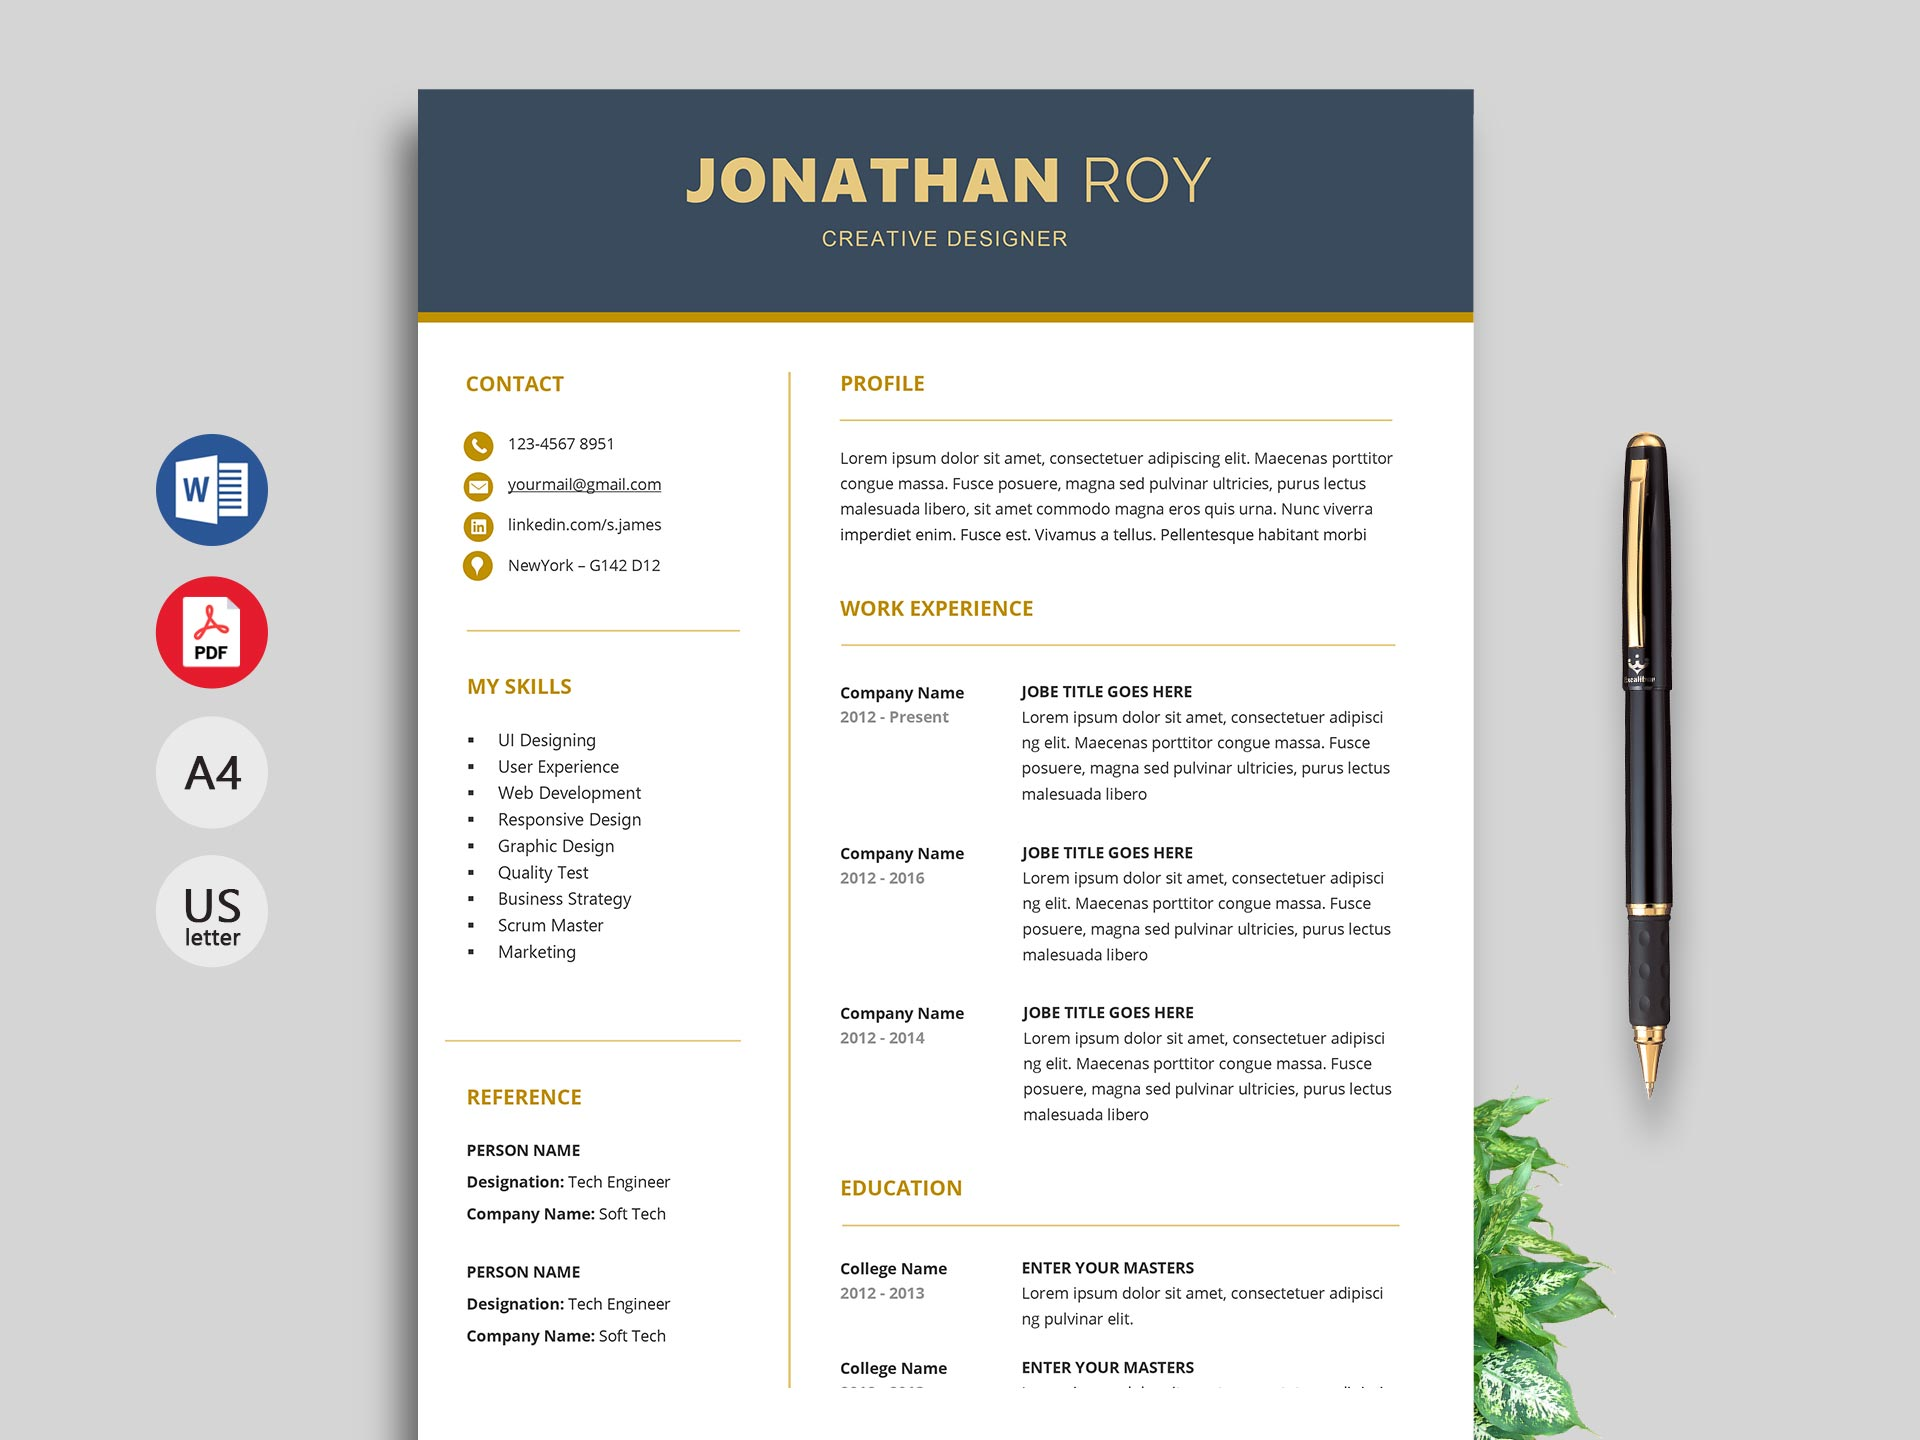 premium resume templates resumekraft free microsoft word gain template biodata Resume Free Microsoft Word Resume Templates